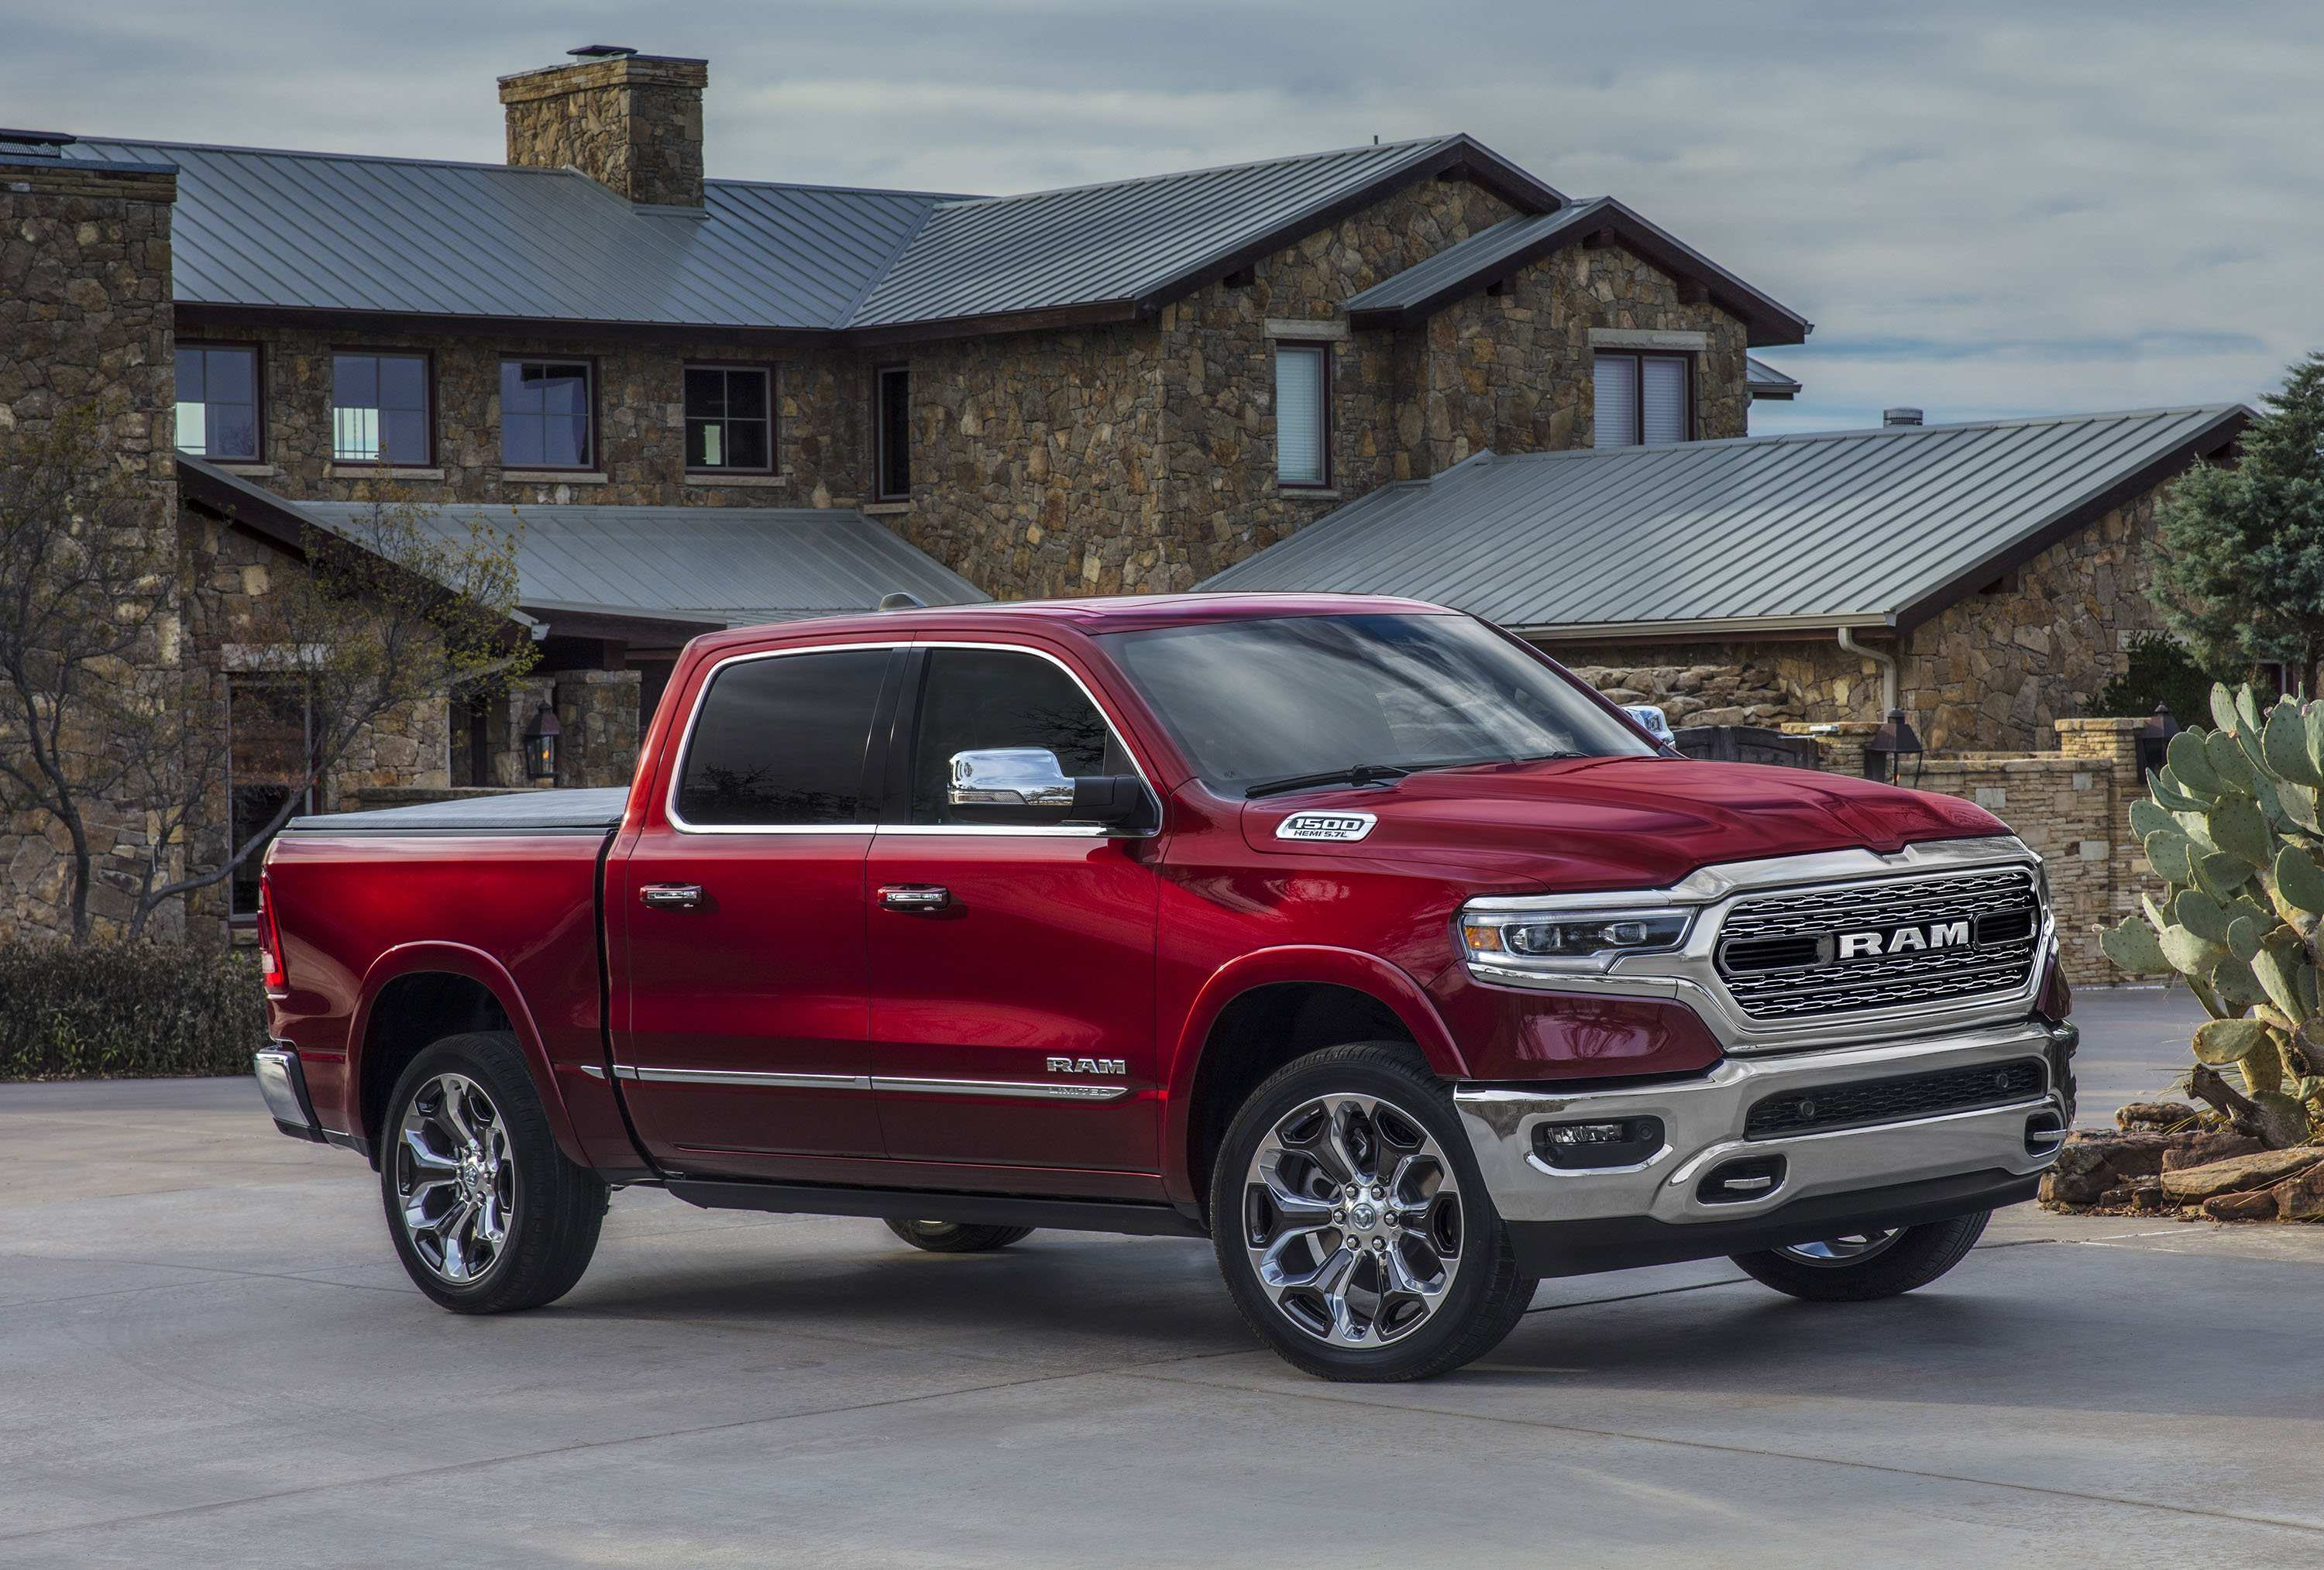 19 Great Dodge Hemi 2020 Rumors with Dodge Hemi 2020